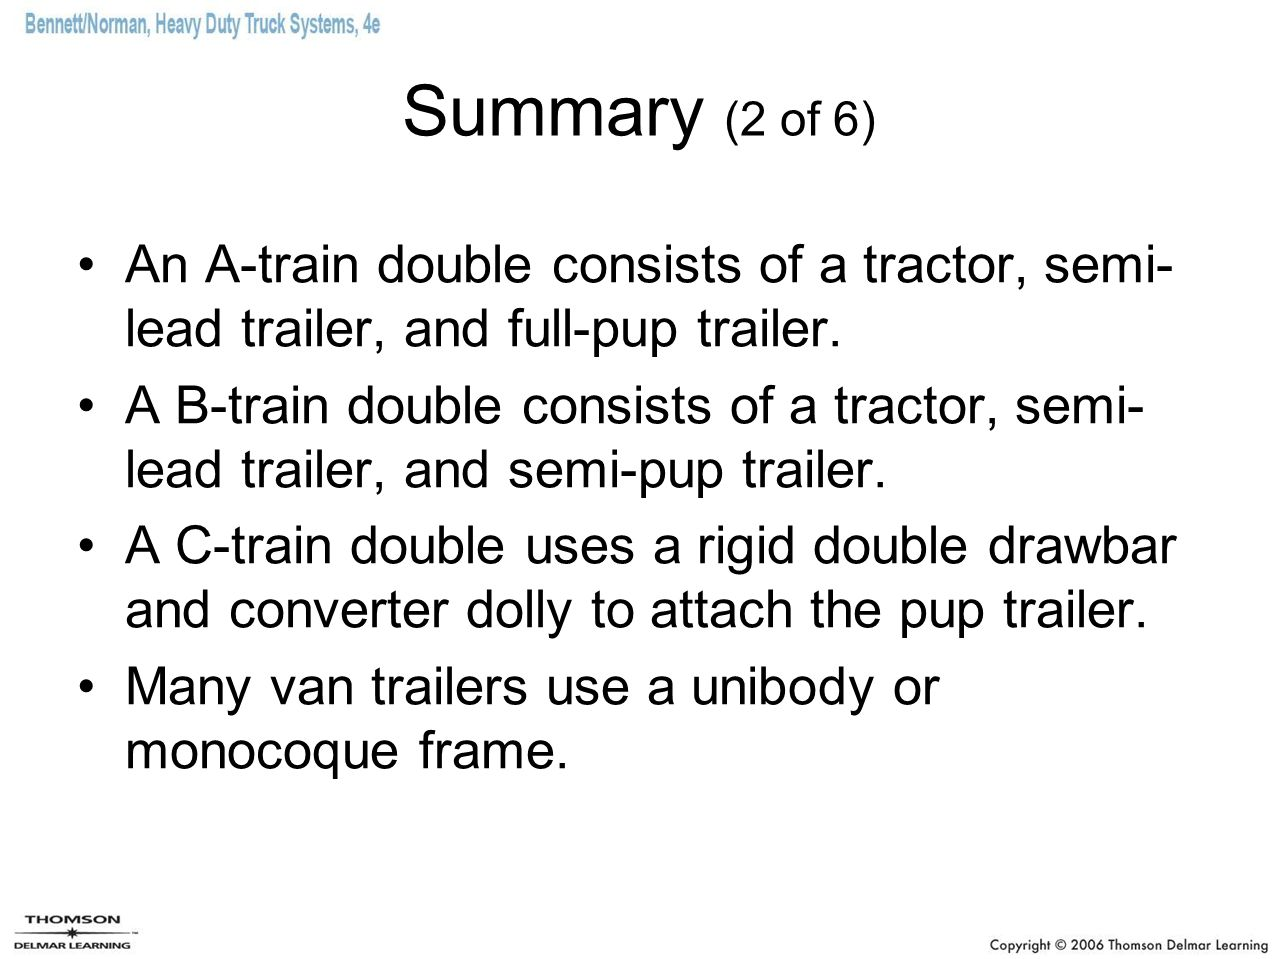 Summary (2 of 6) An A-train double consists of a tractor, semi- lead trailer, and full-pup trailer.